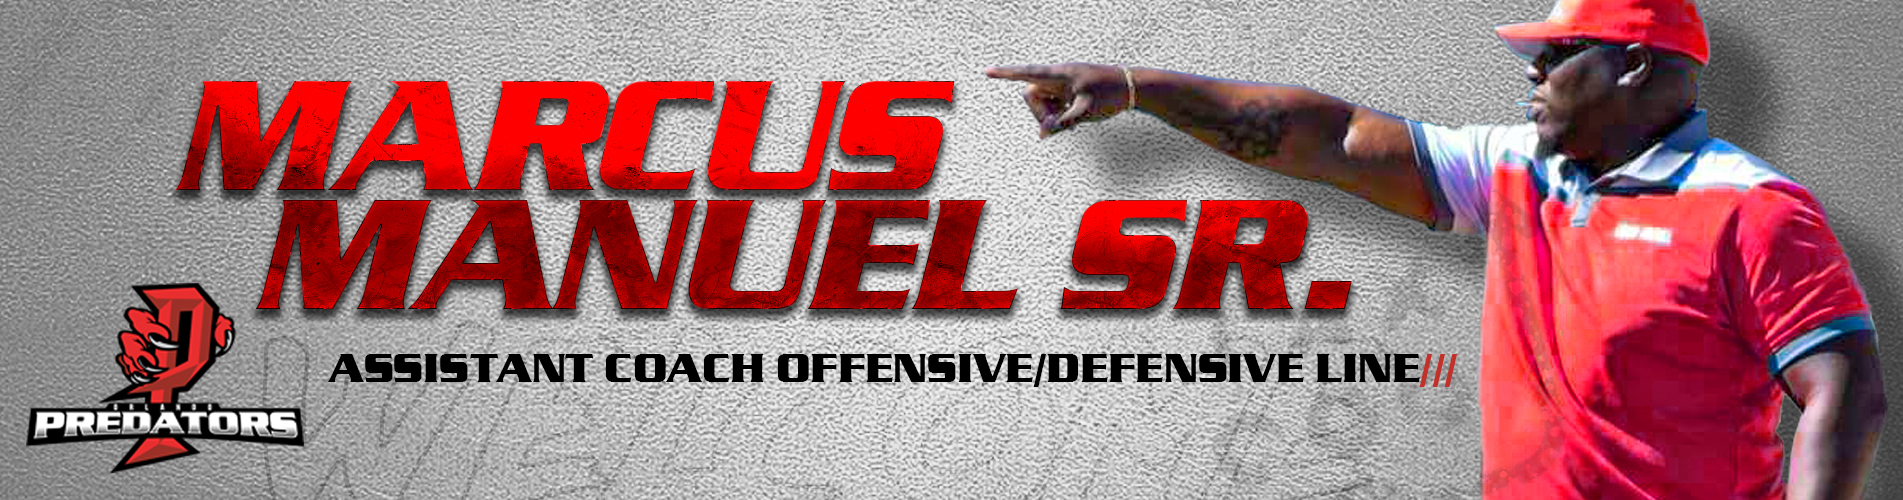 Marcus Manuel Sr. Assistant Coach Offensive/Defensive Line for Orlando Predators